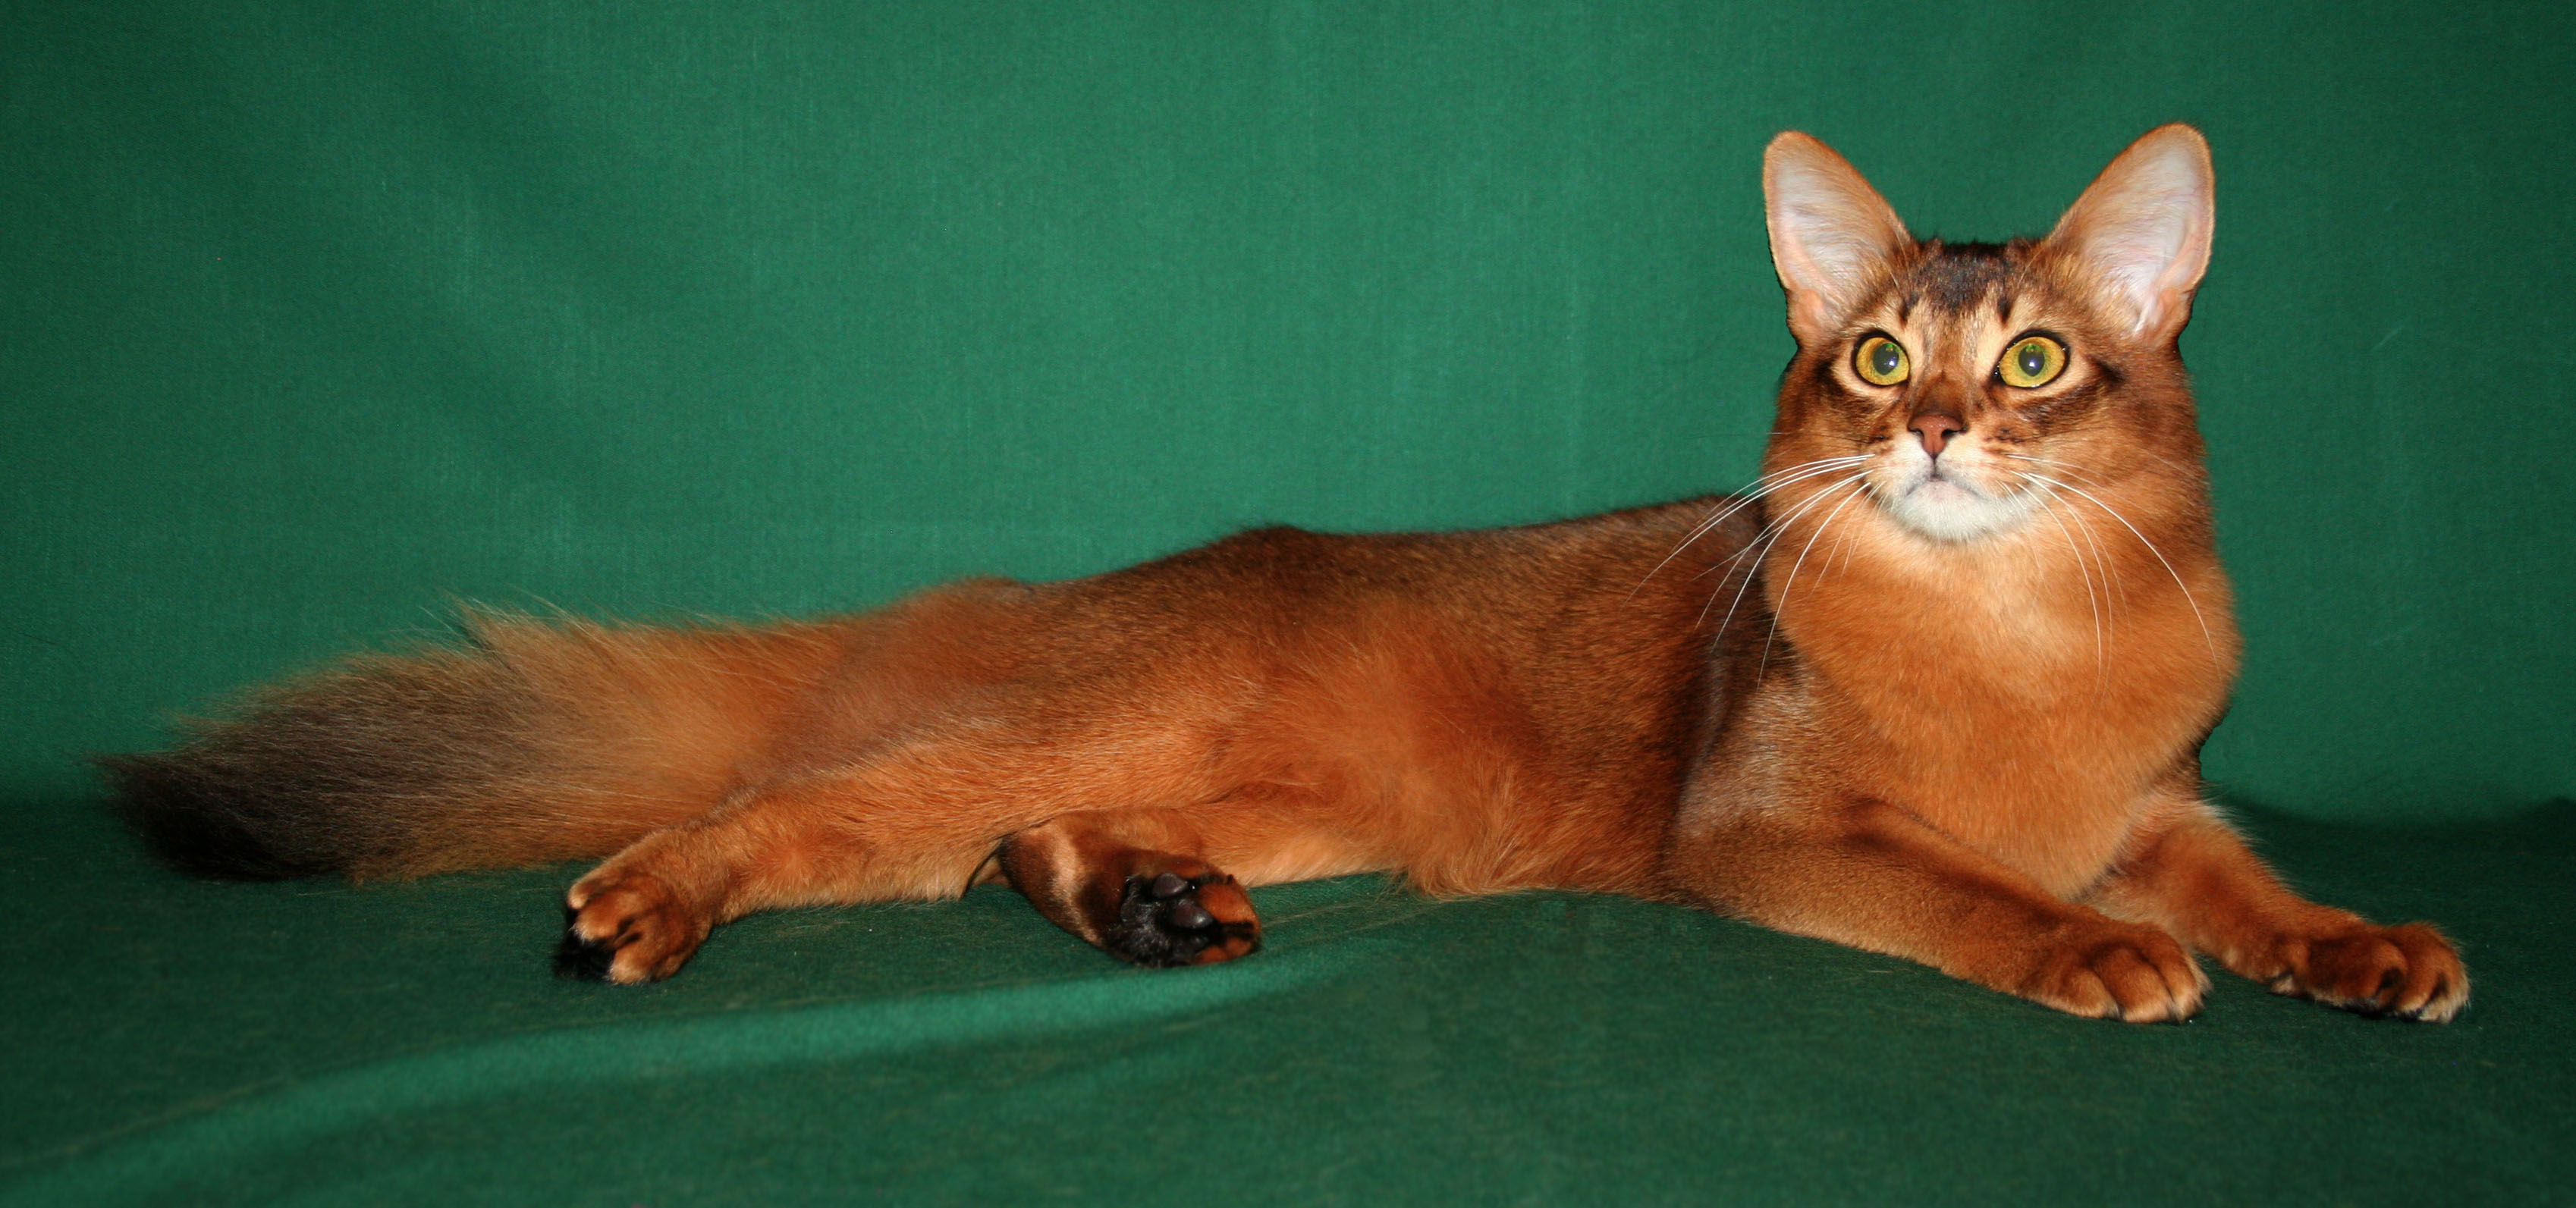 Cat Cat Somali Cat Blue Ruddy Red Breed Info Personality